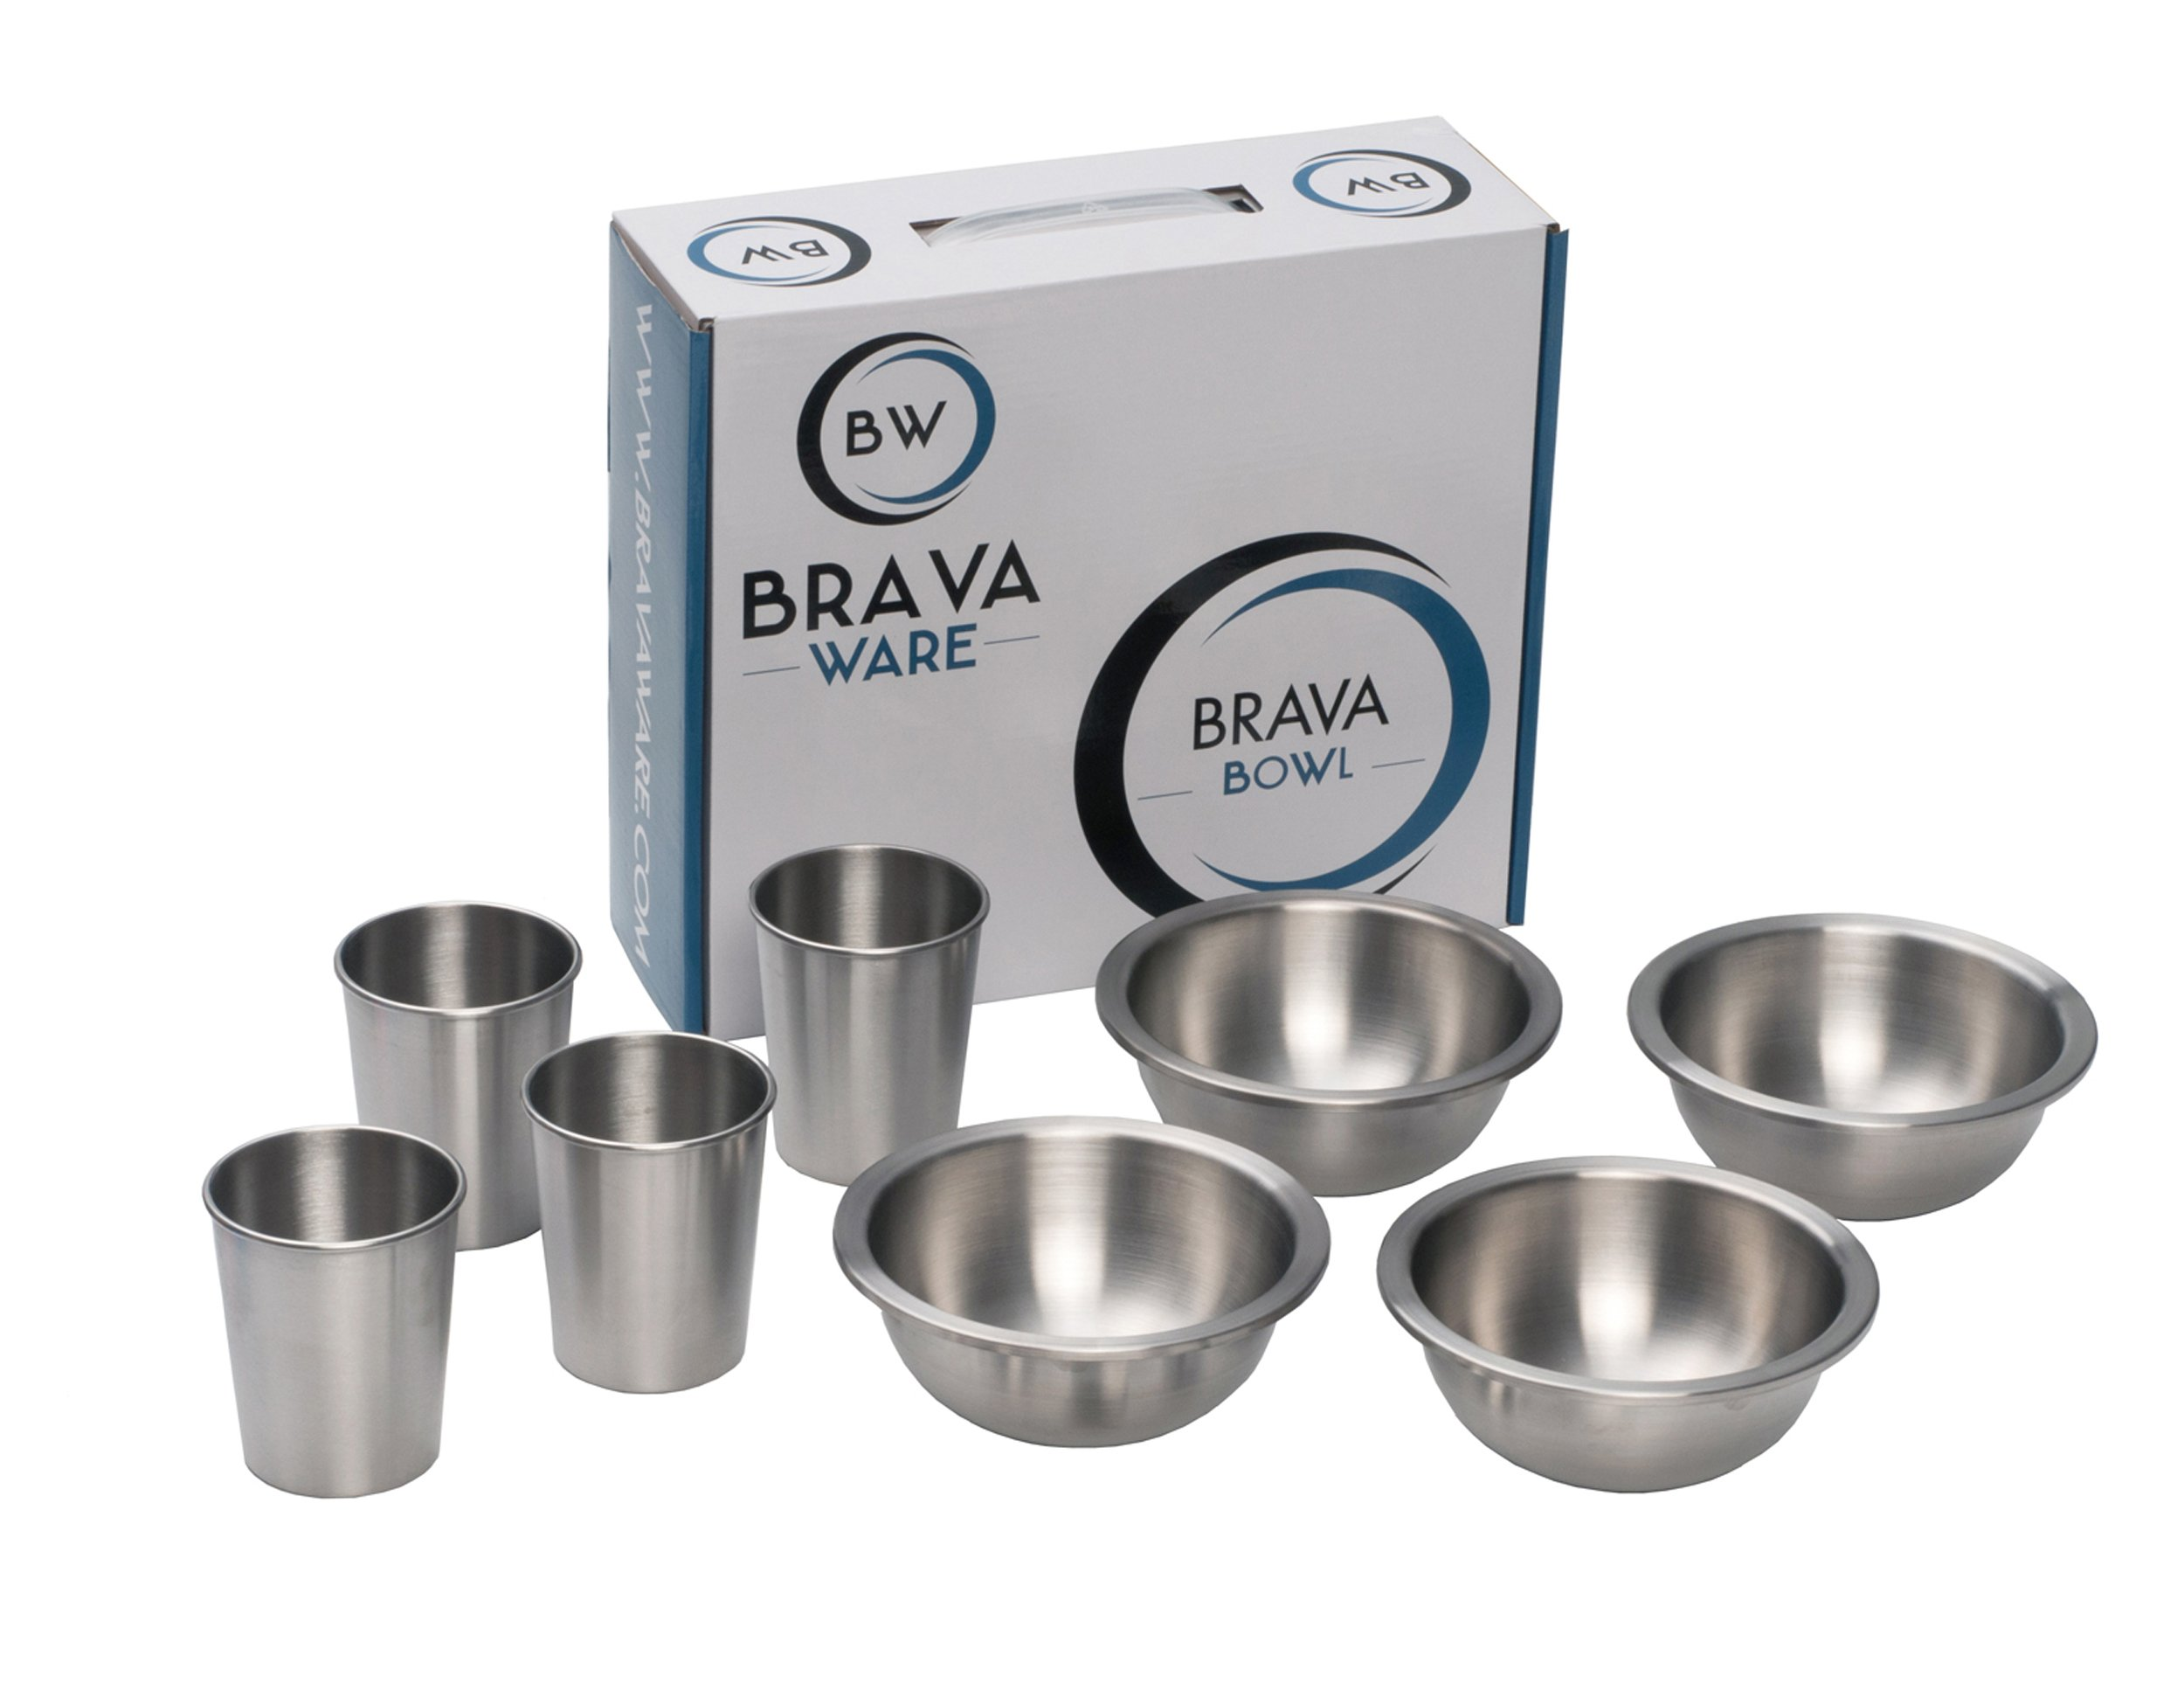 Stainless Steel Bowls and Cups 8 Piece Set: 4 Stainless Steel Bowls and 4 Stainless Steel Cups for Children Toddlers and Babies - Stainless Steel Cup and Bowl Set for Camping, Picnics and RV by BravaWare